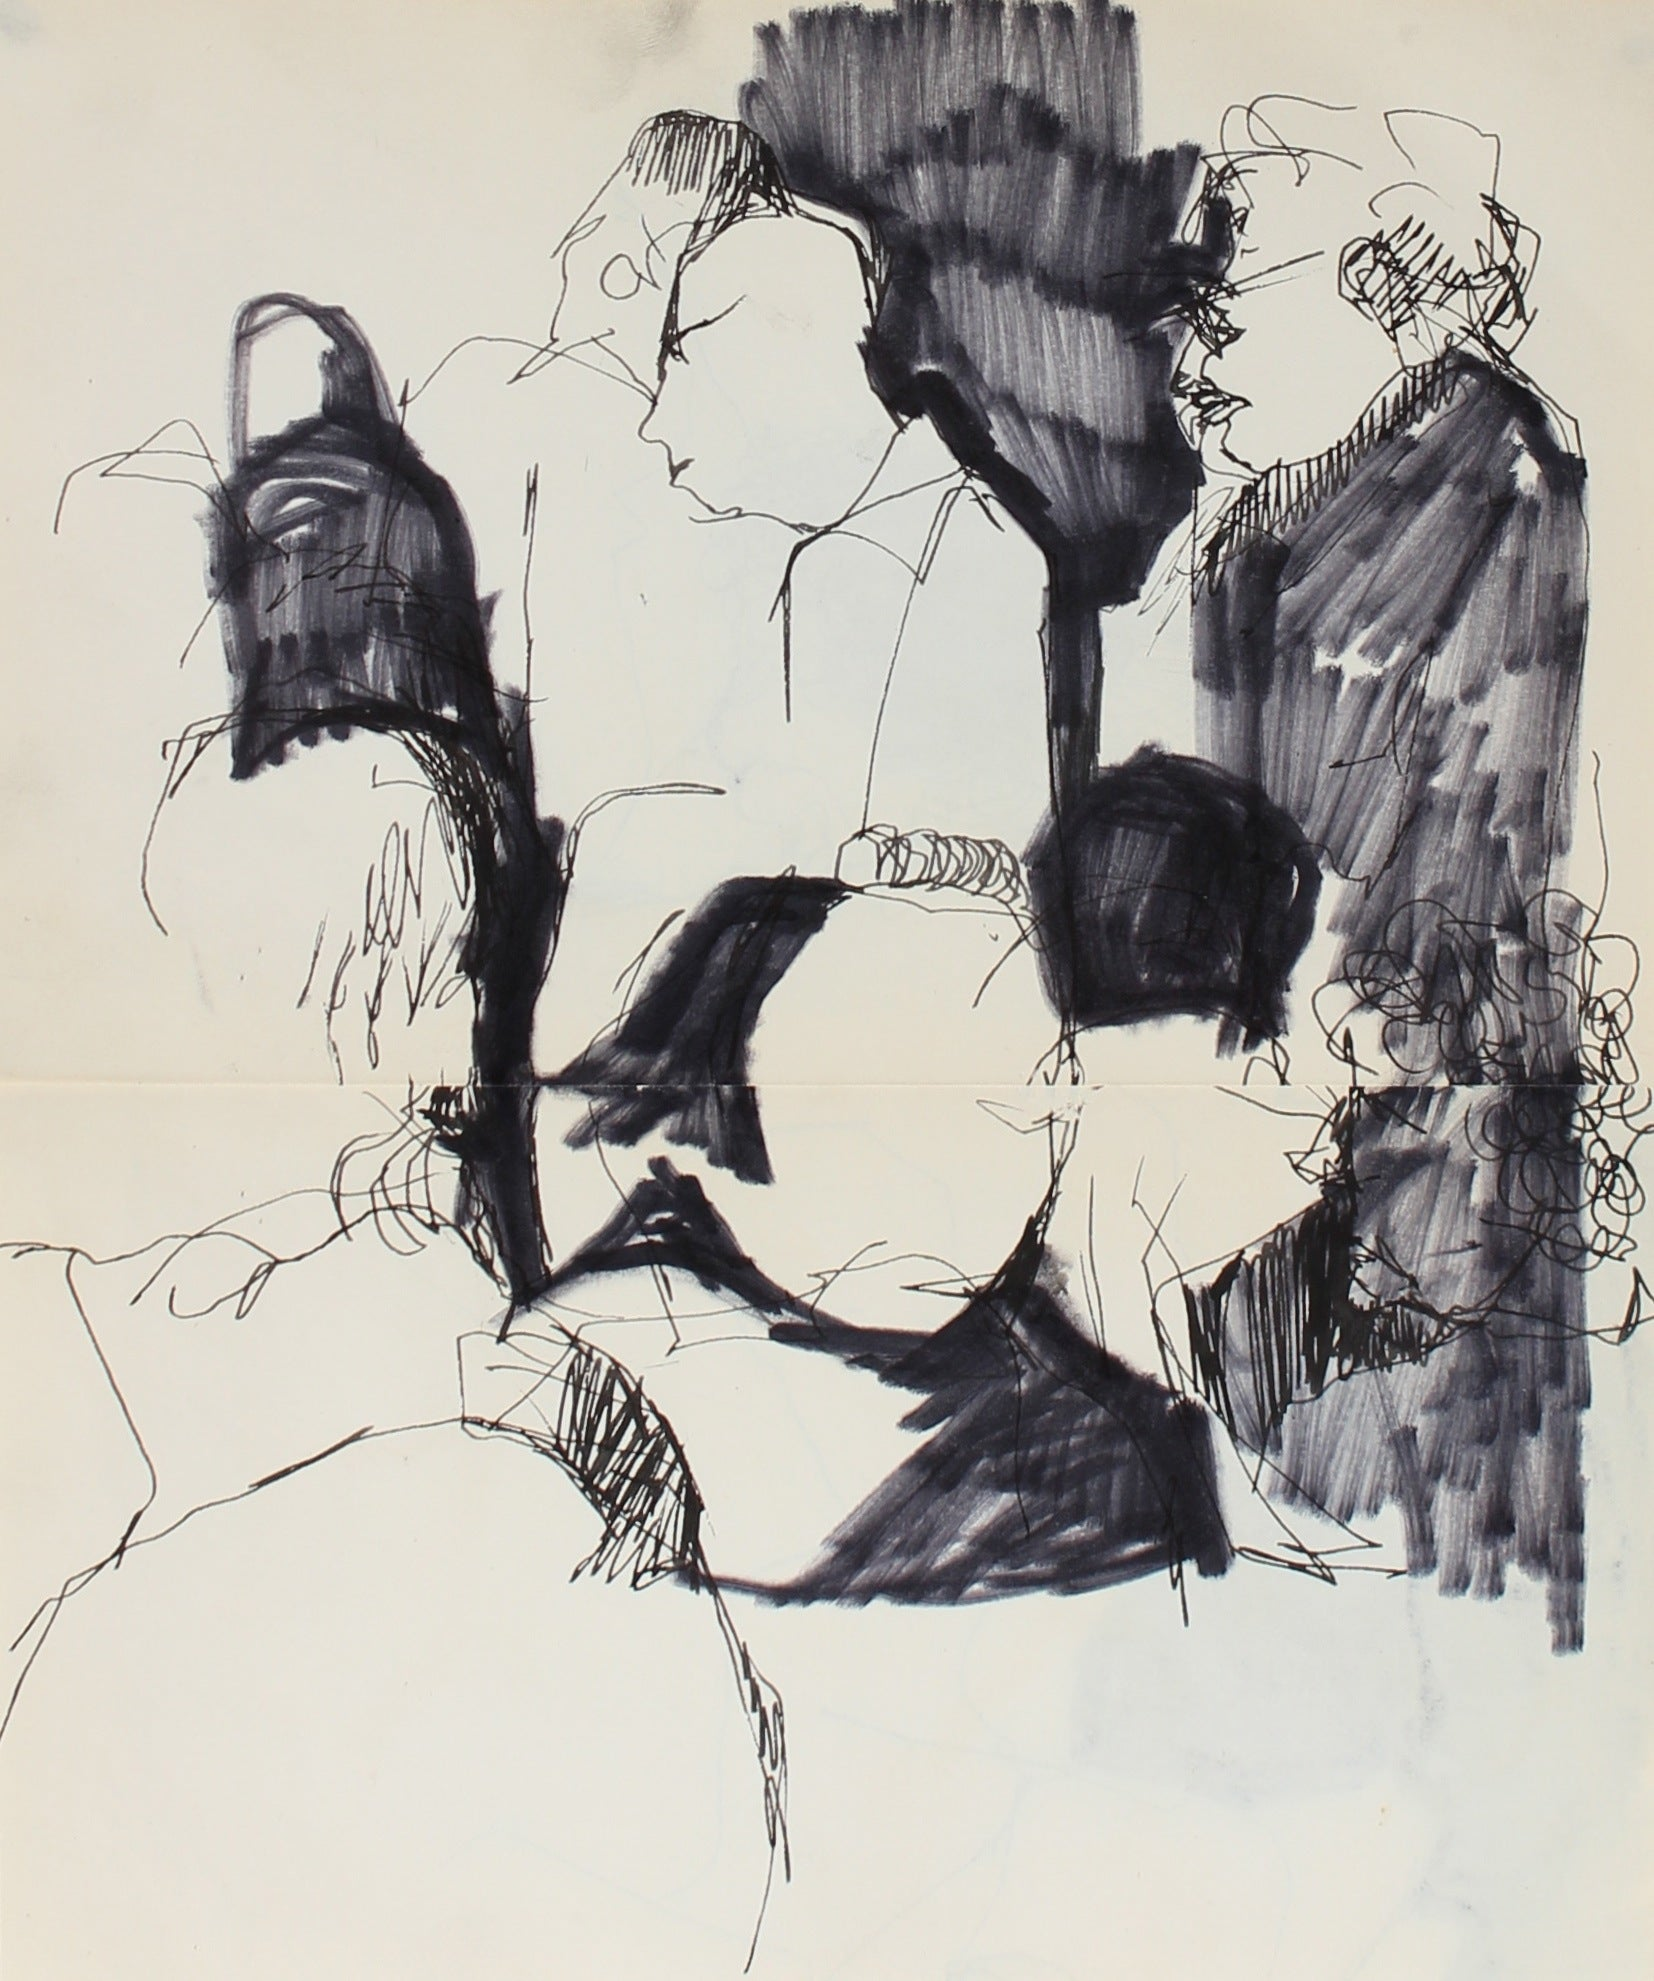 Shadowy Monochromatic Figures<br>1950-60s, Ink on Paper<br><br>#0254